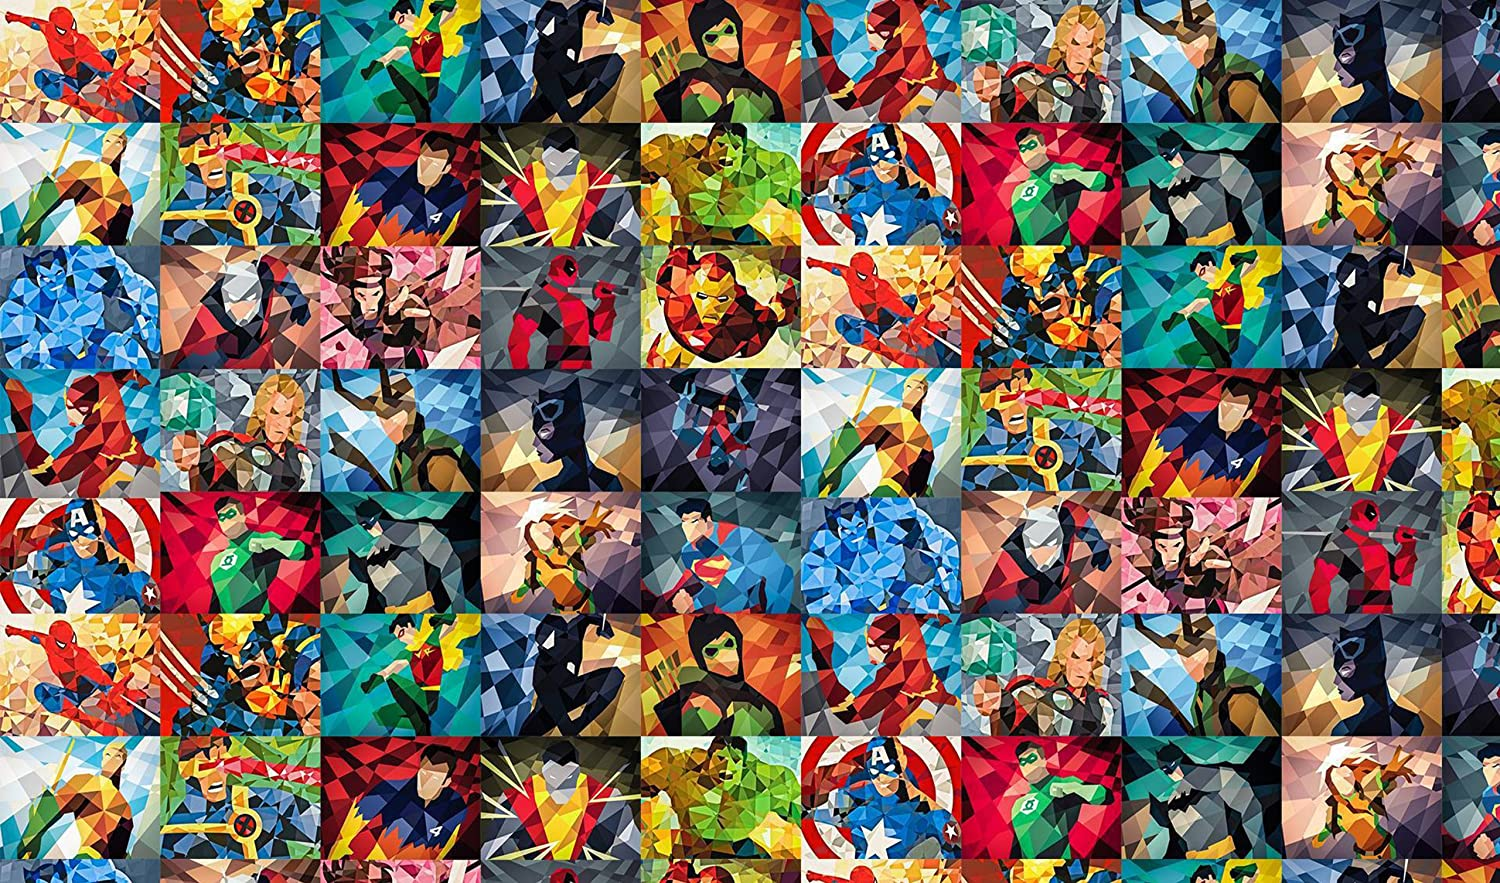 HiddenSupplies.com Marvel Collage Prism Playmat + Free RFG Standard Sized Sleeves 75 Count